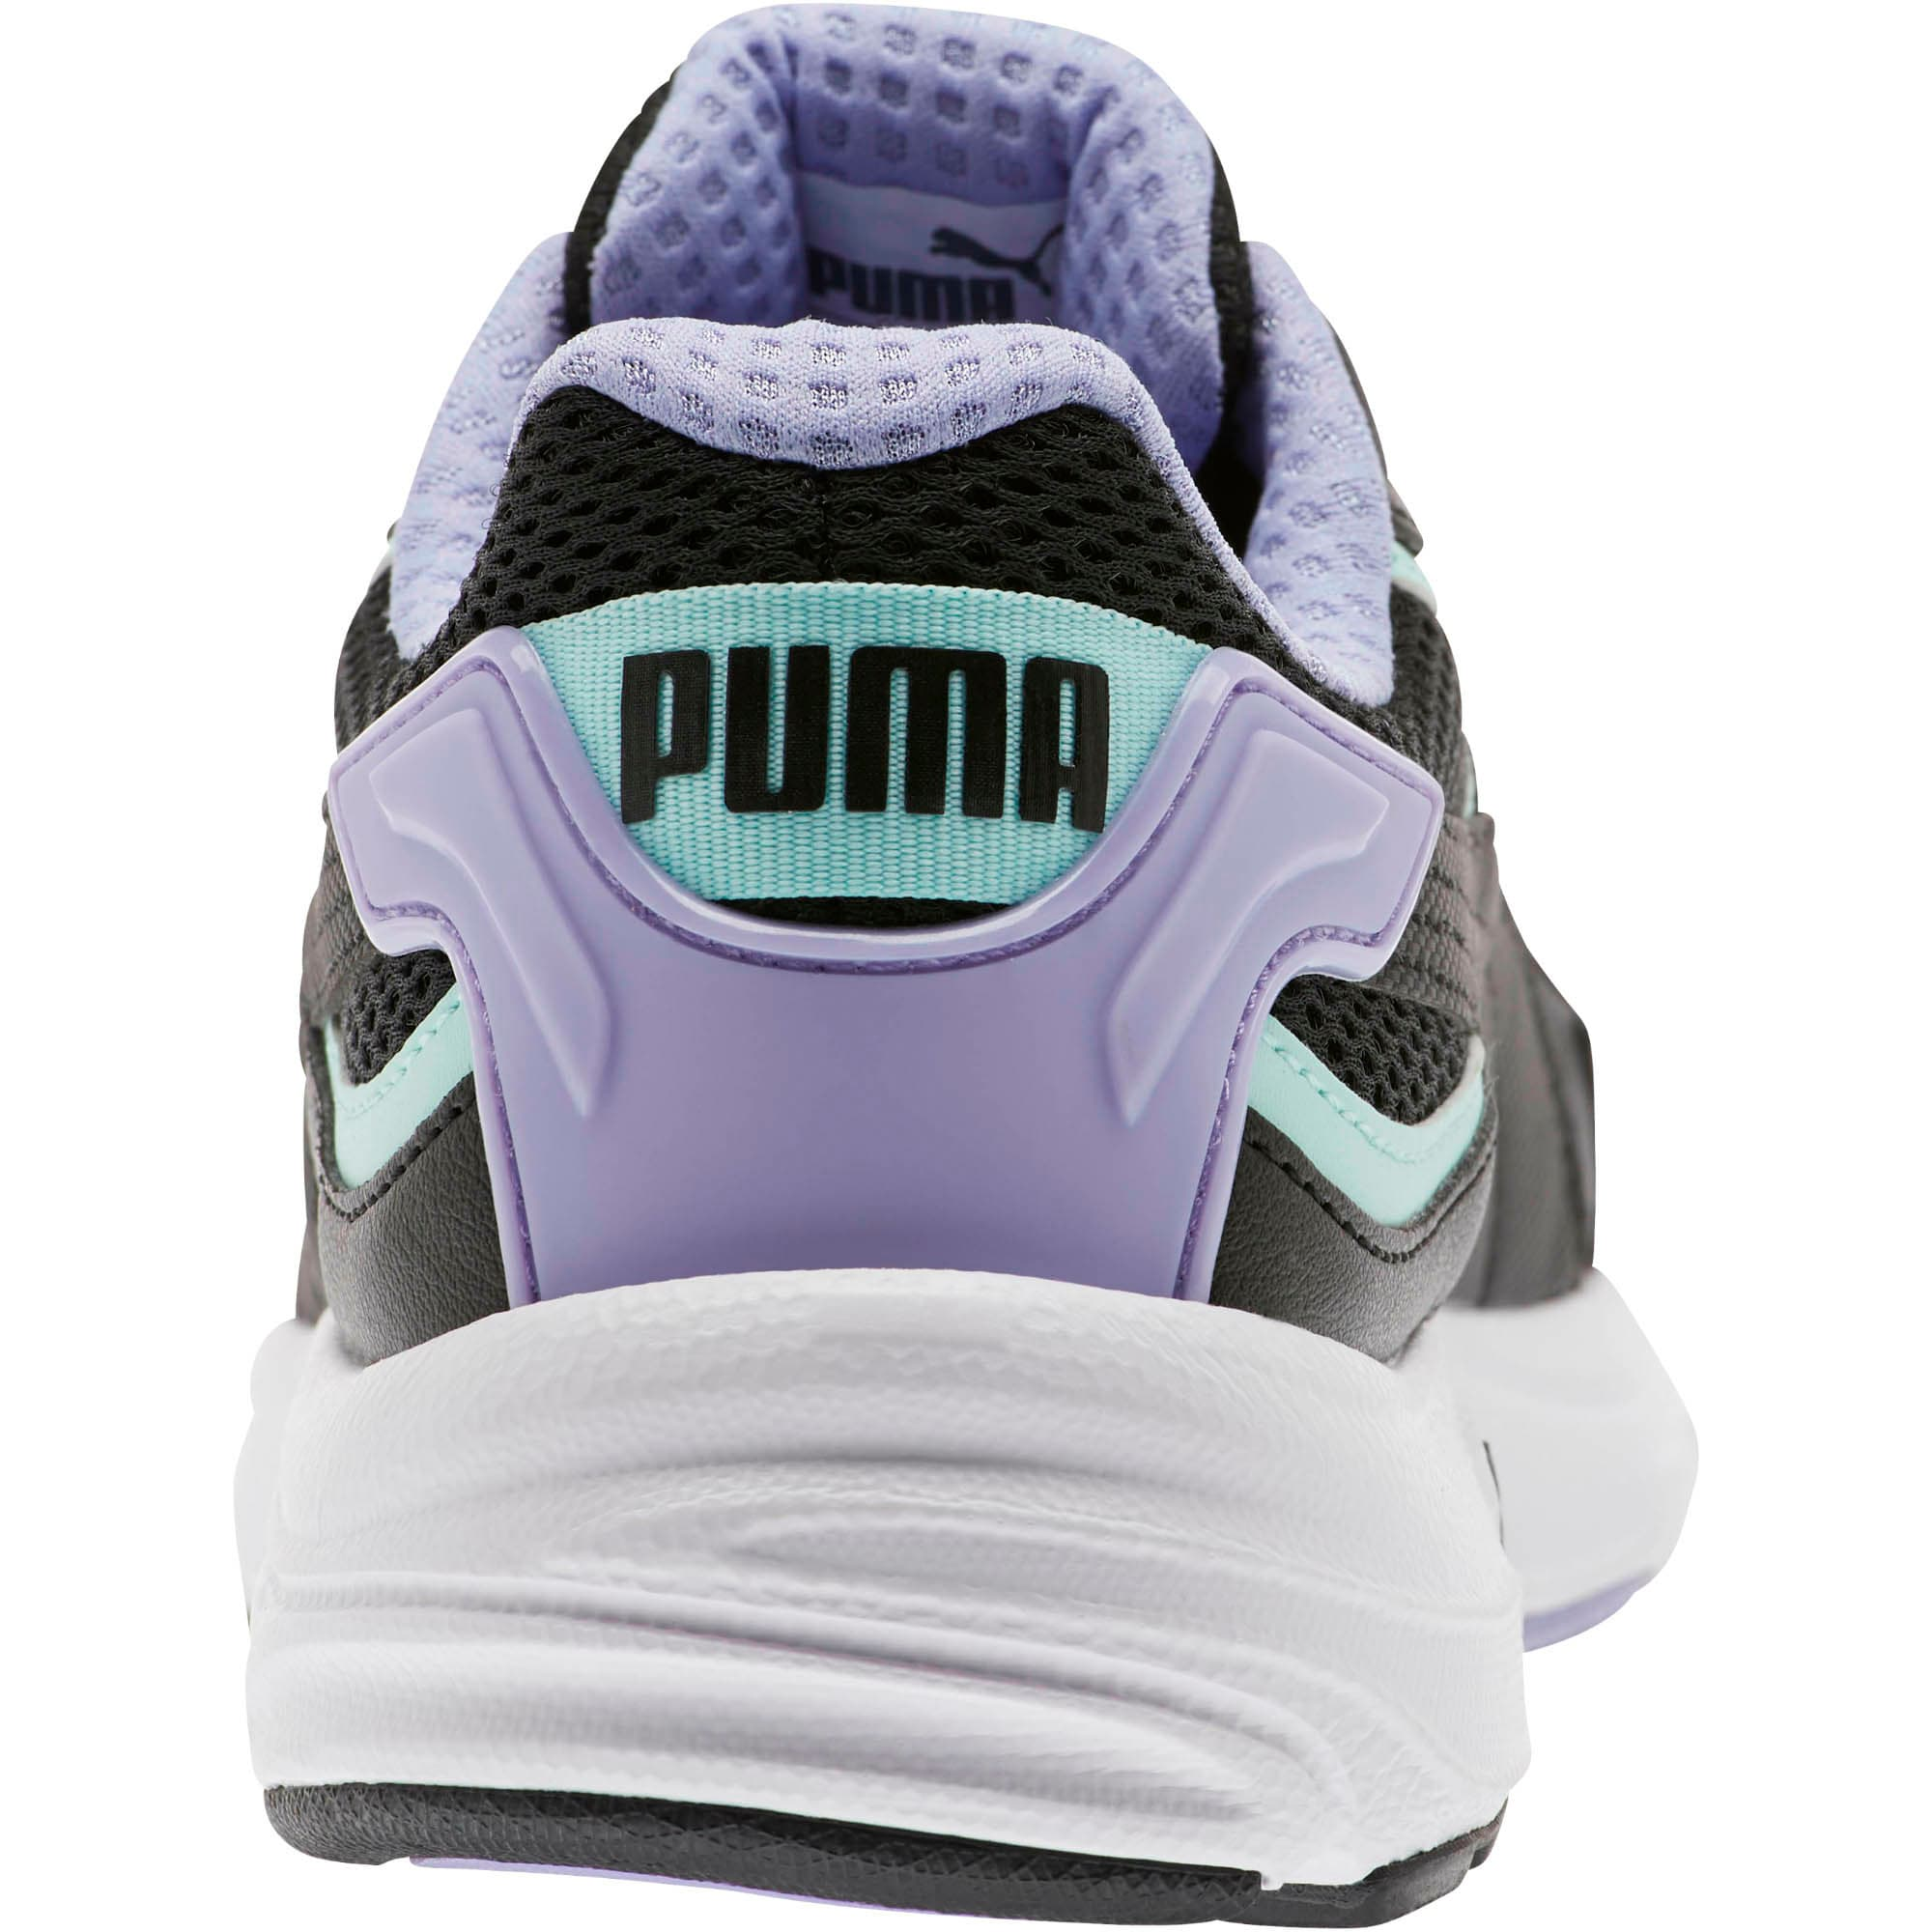 Thumbnail 3 of Axis Plus 90s Women's Sneakers, Black-F Aqua-S Lavender-Wht, medium